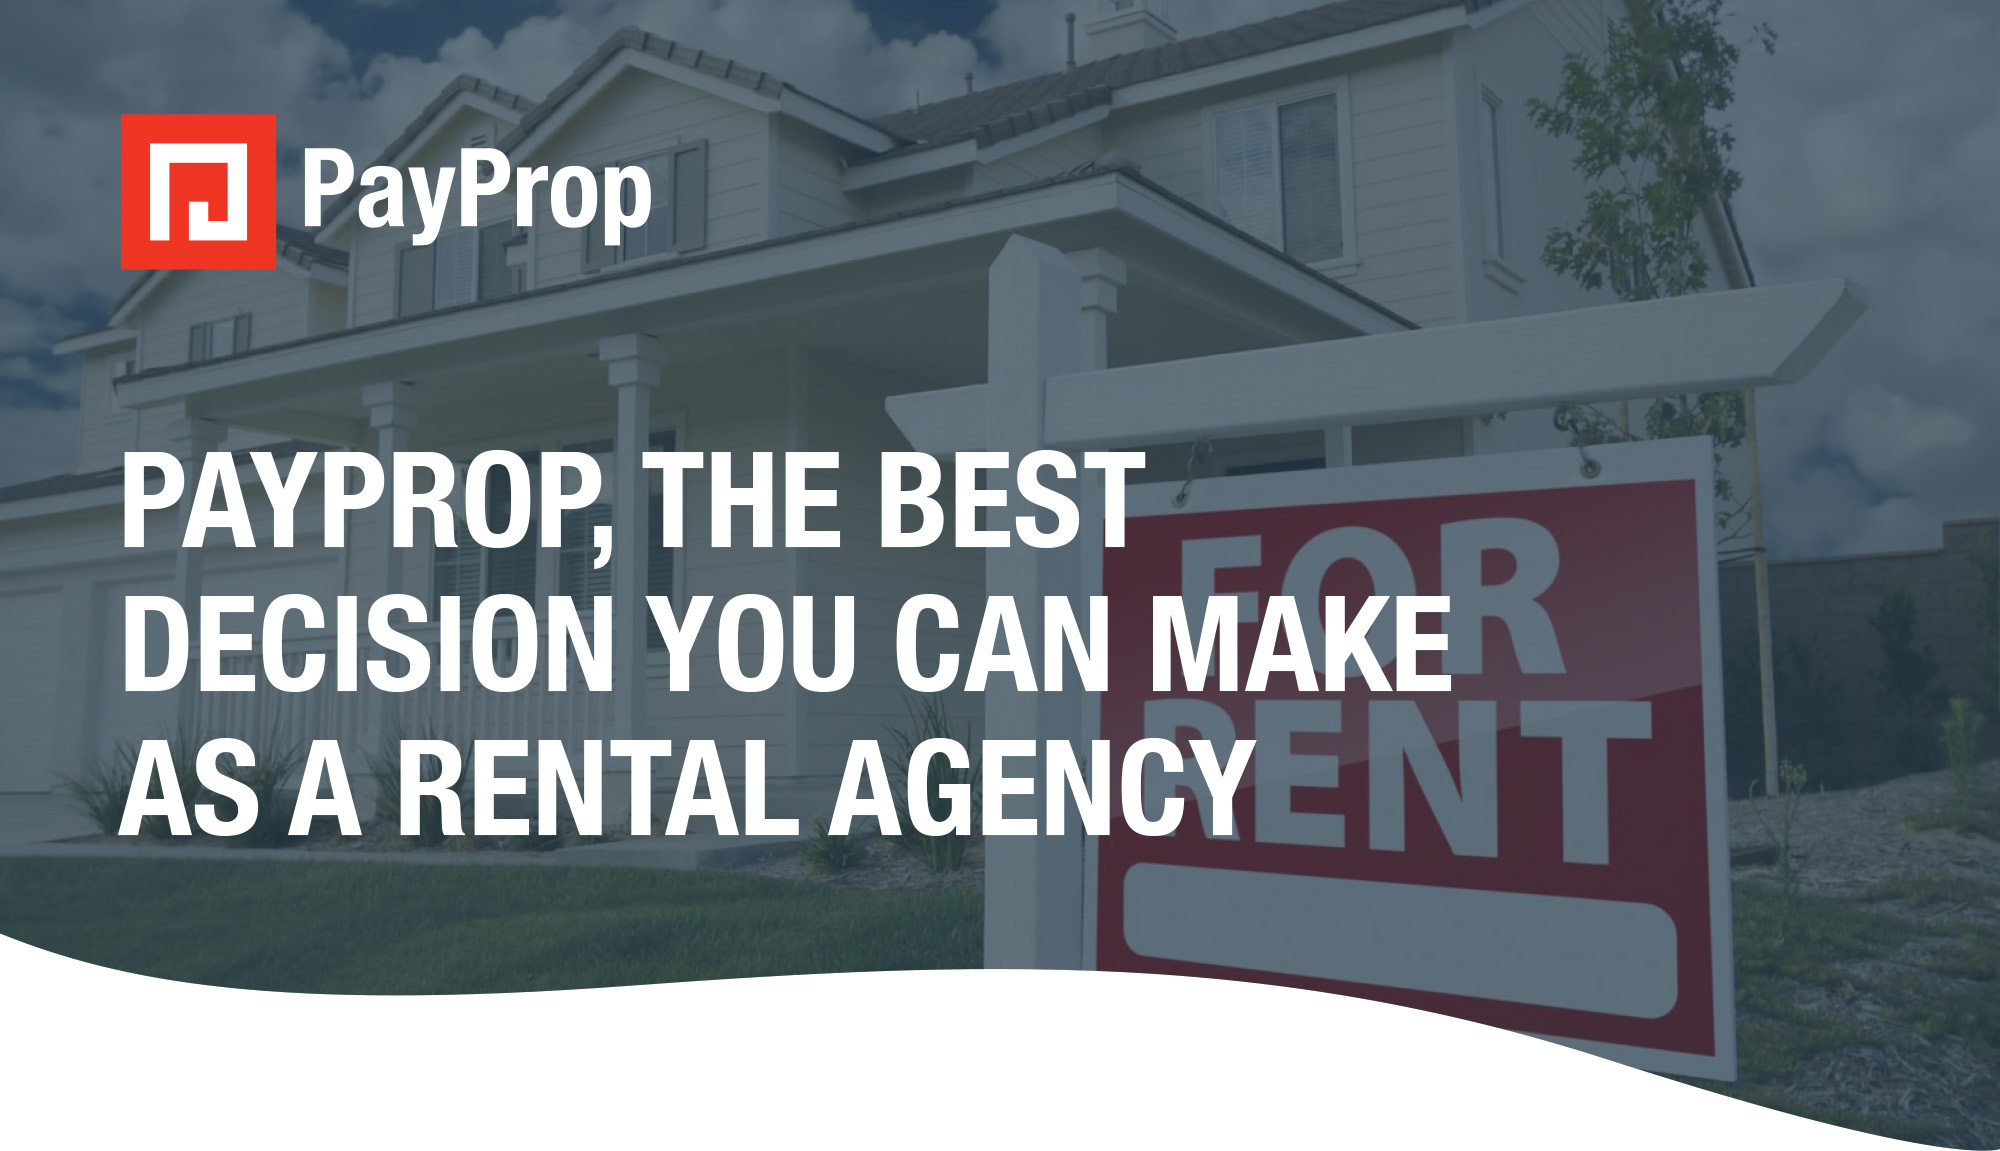 PayProp, the best decision you can make as a rental agency